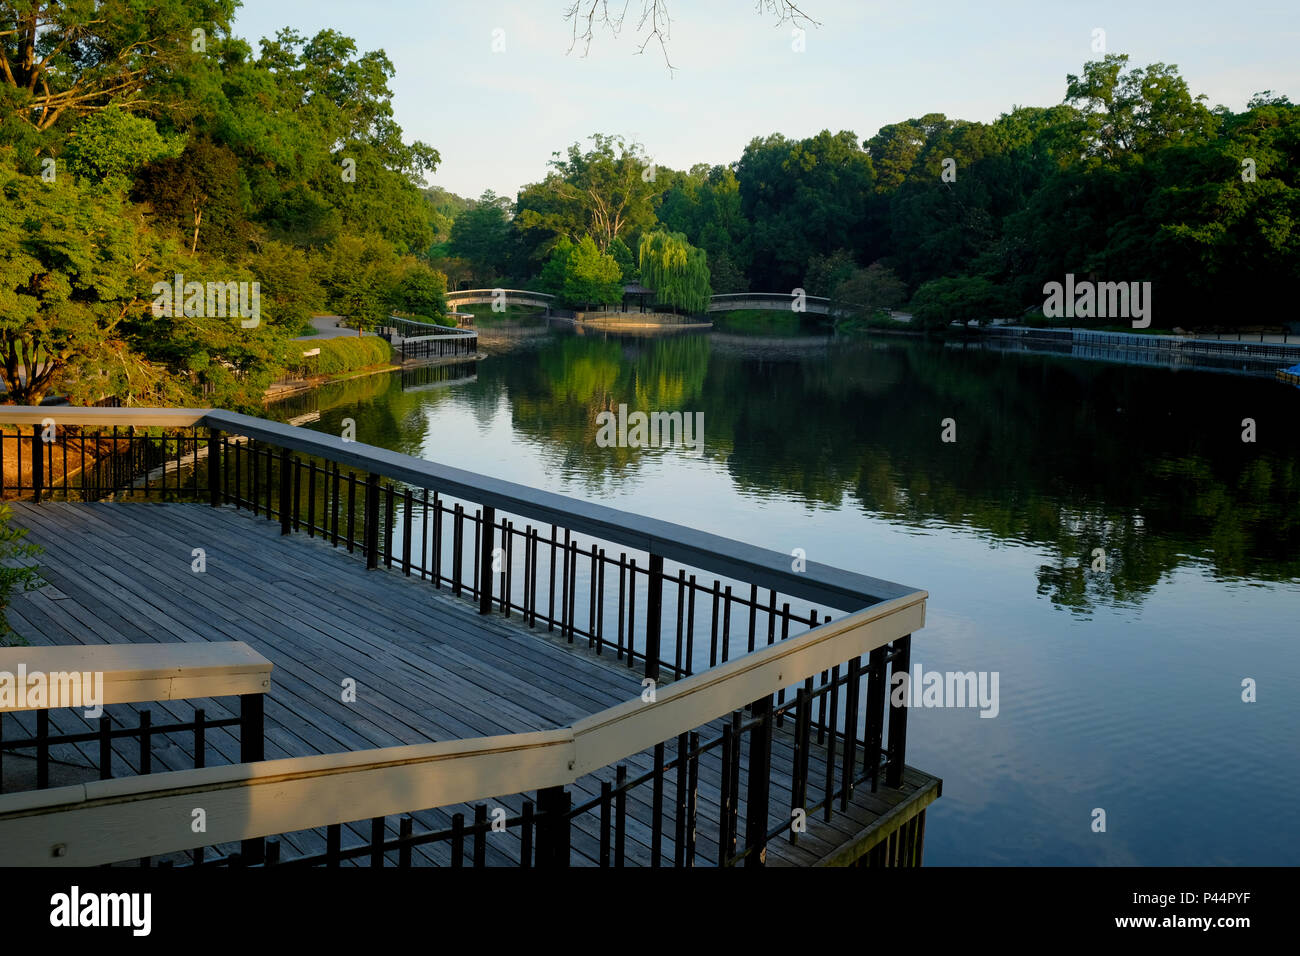 View from the observation deck of the lake at Pullen Park in downtown Raleigh North Carolina in the early morning sunshine - Stock Image